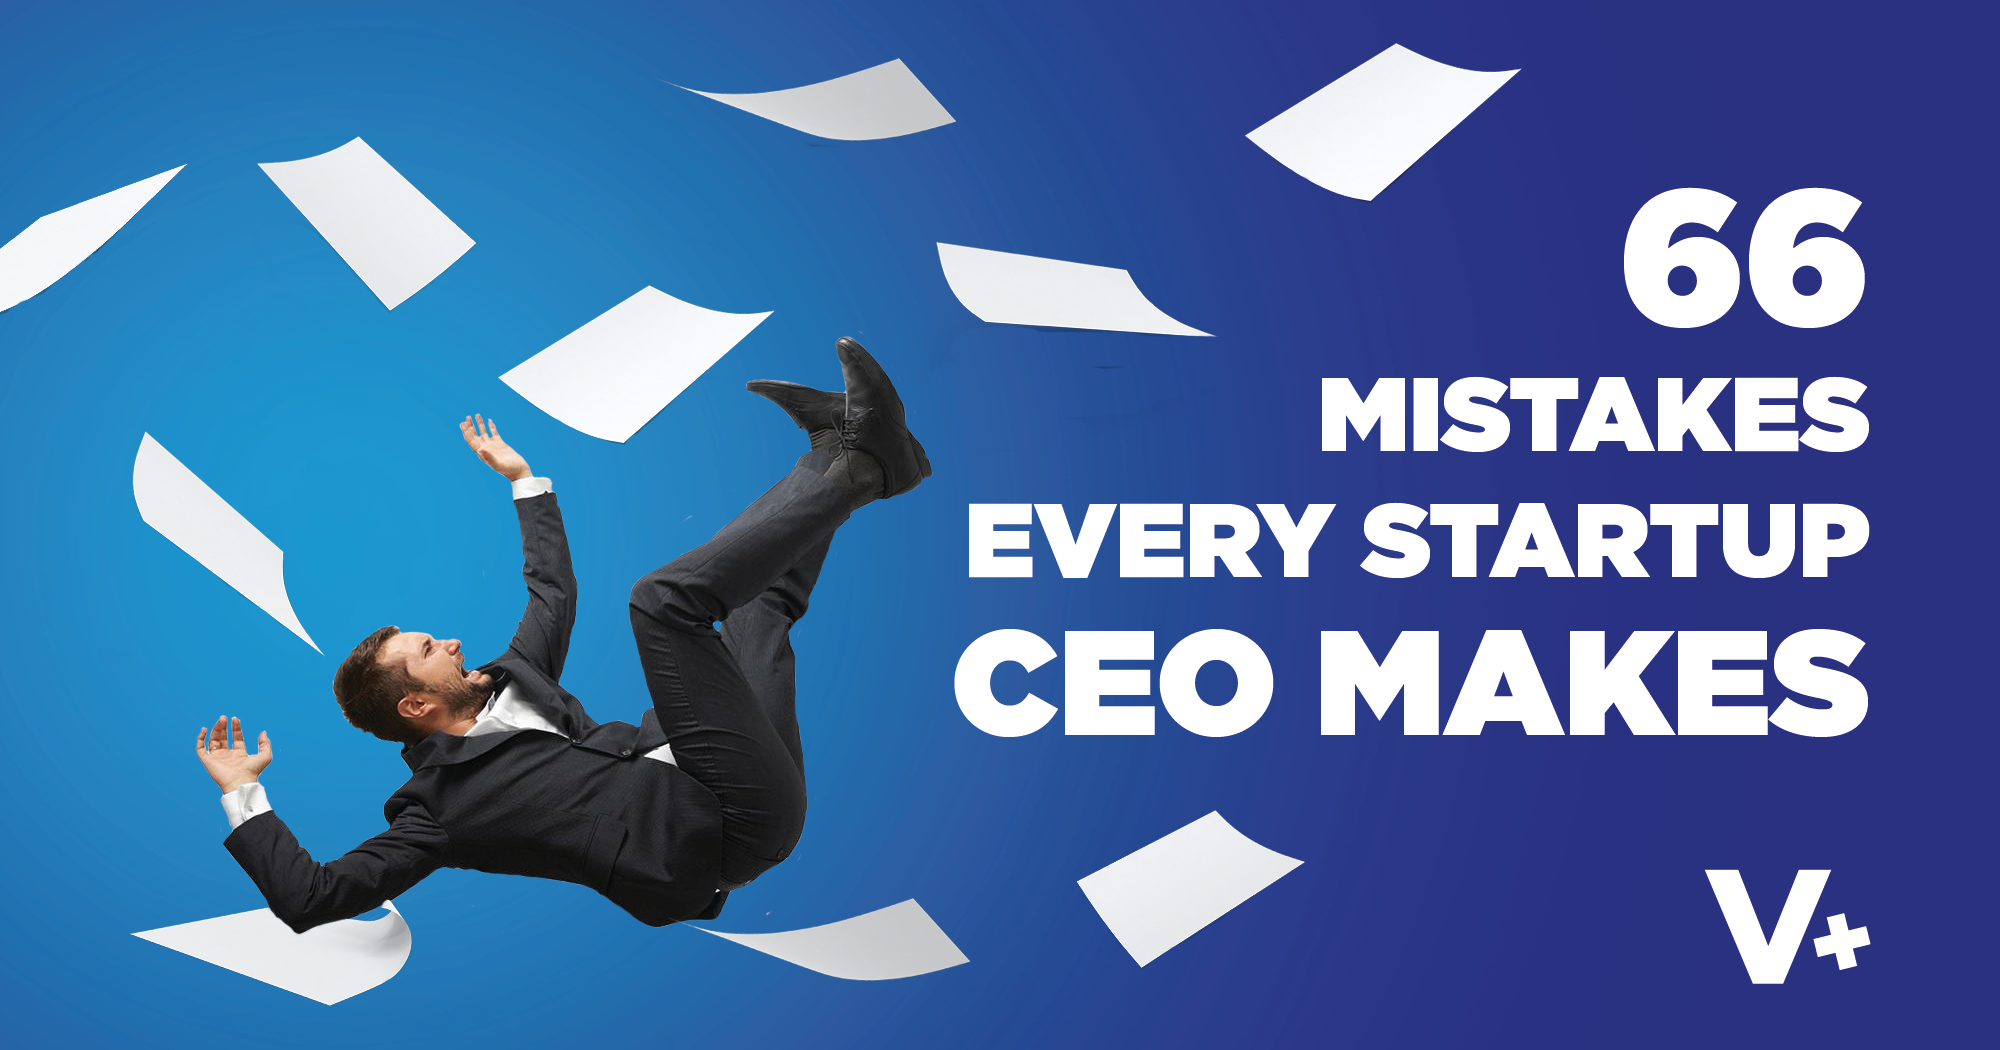 66 Mistakes Every Startup CEO Makes